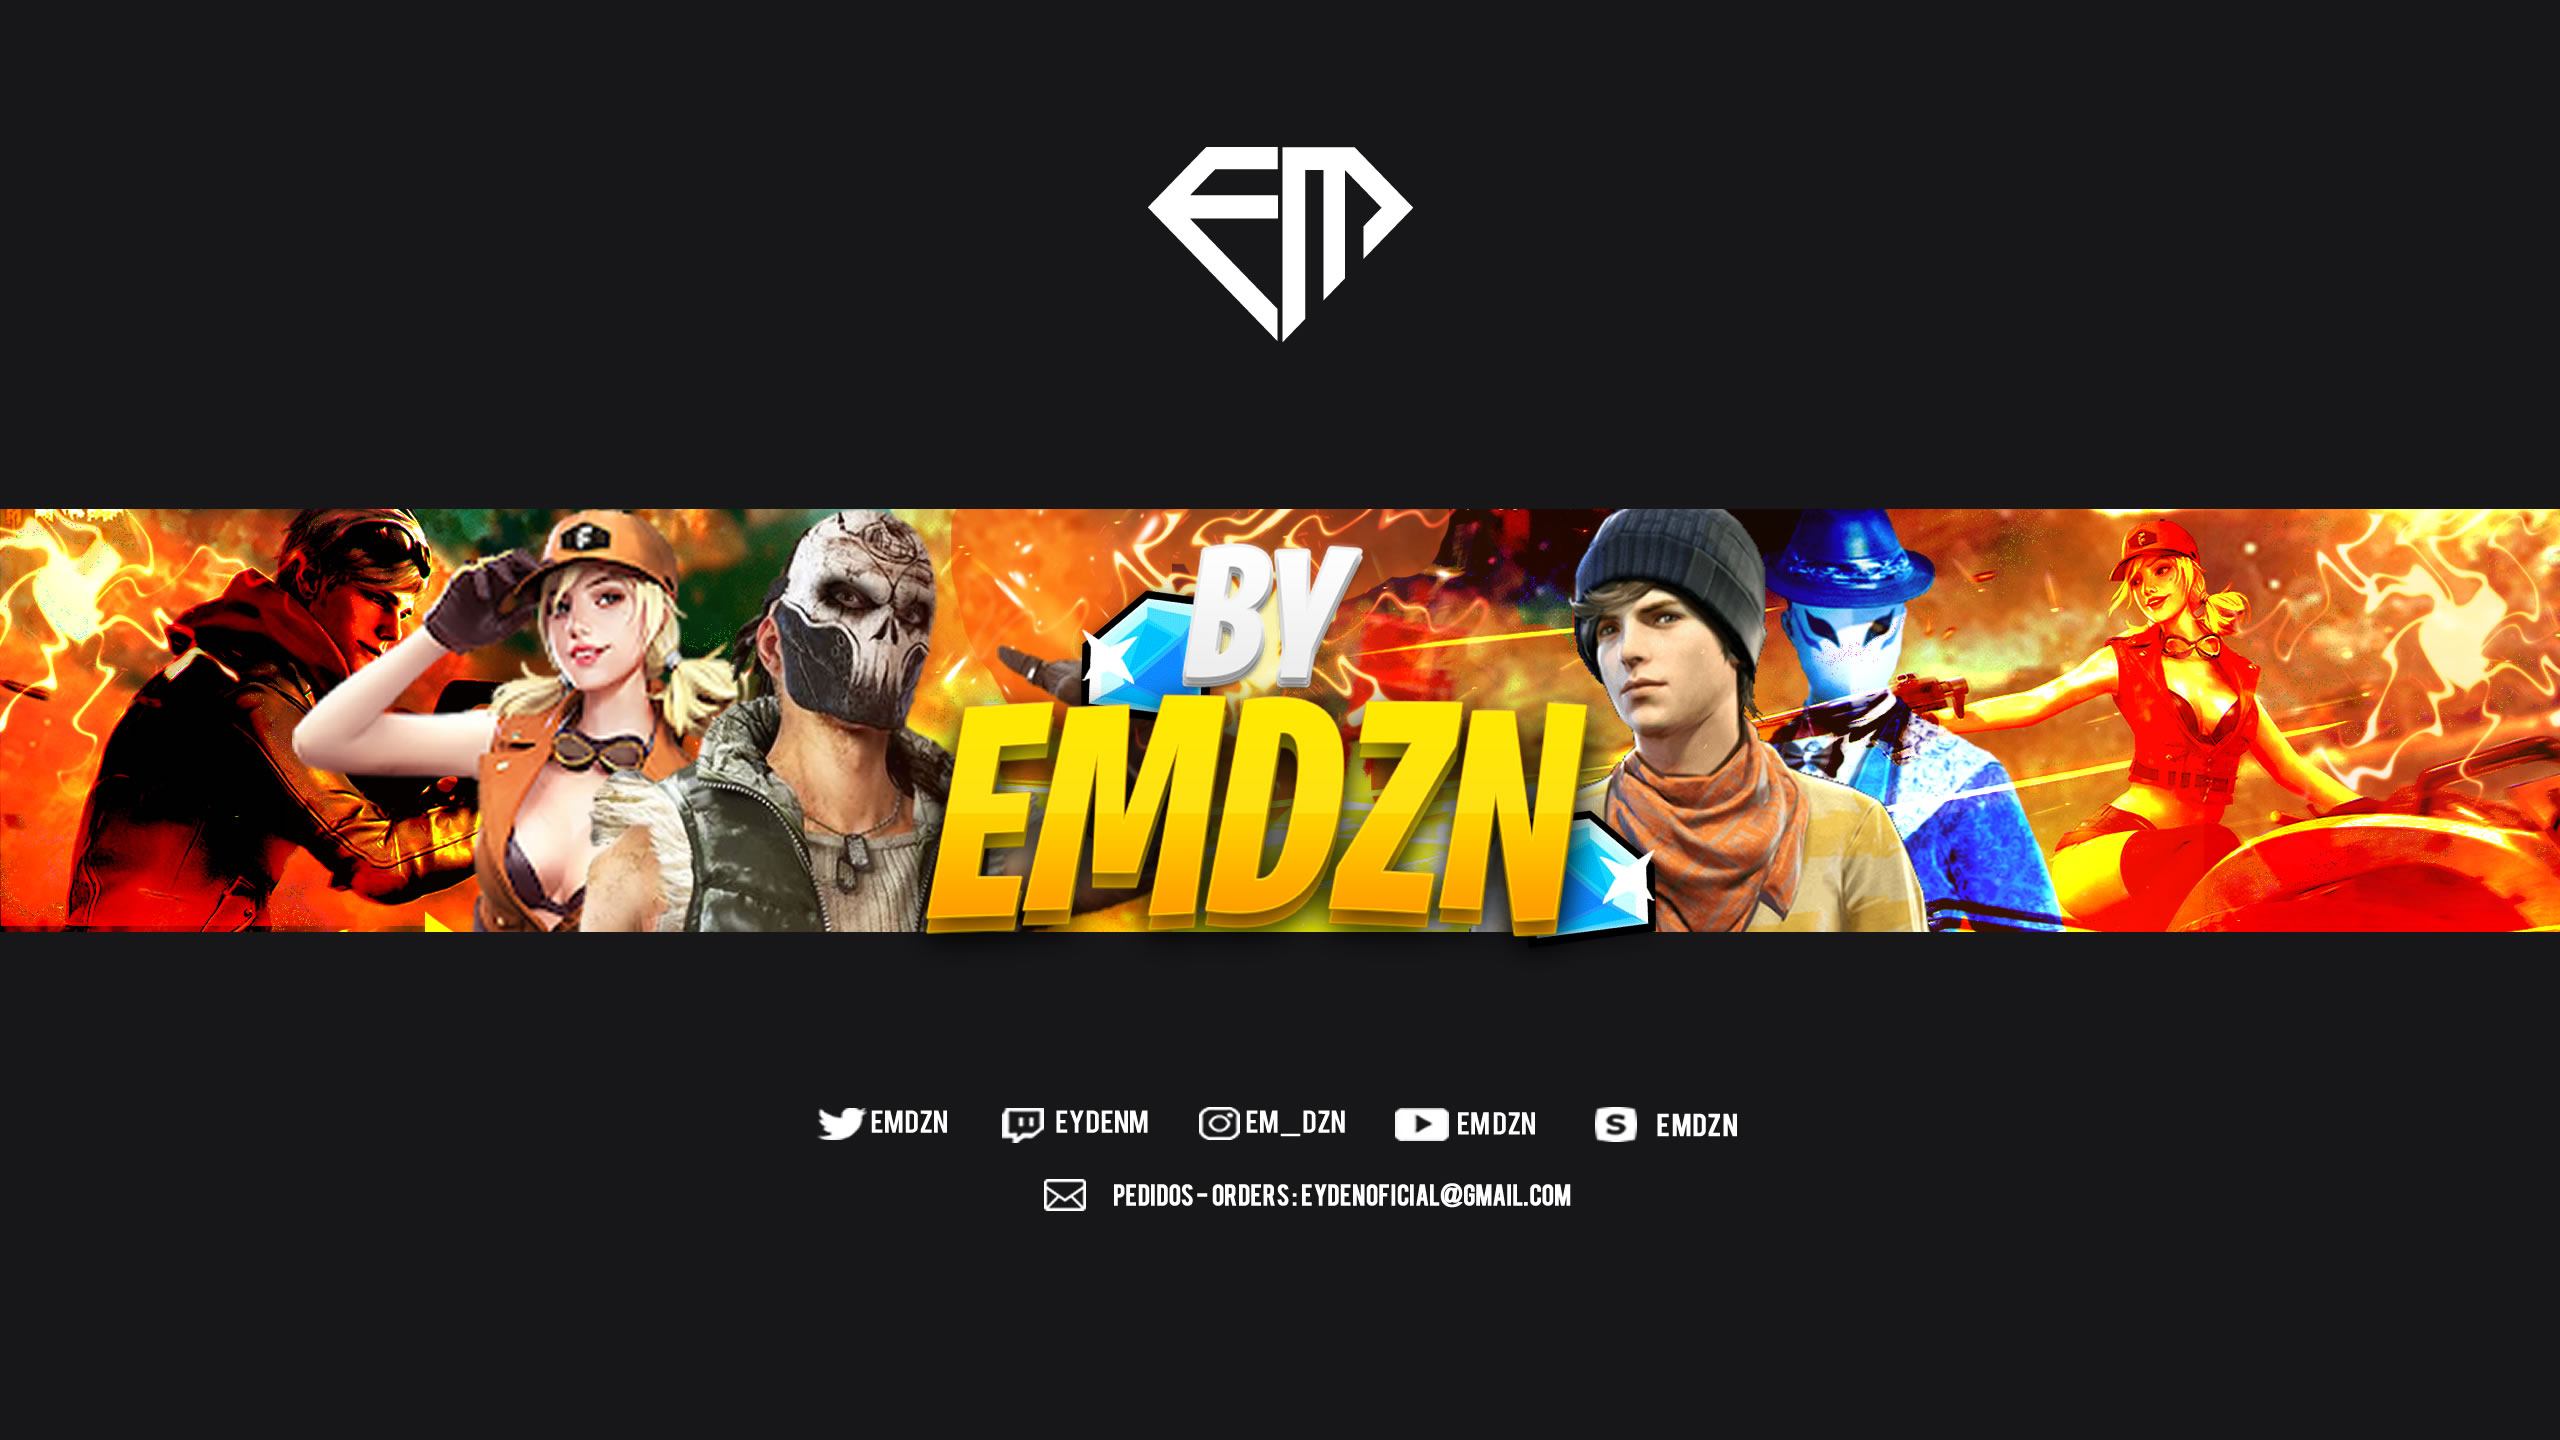 Banner Free Fire Template Editable By Emdzn By Https Www Youtube Com Channel Ucccq9g9ihk4gskzf3eegt0w Free Download On Toneden